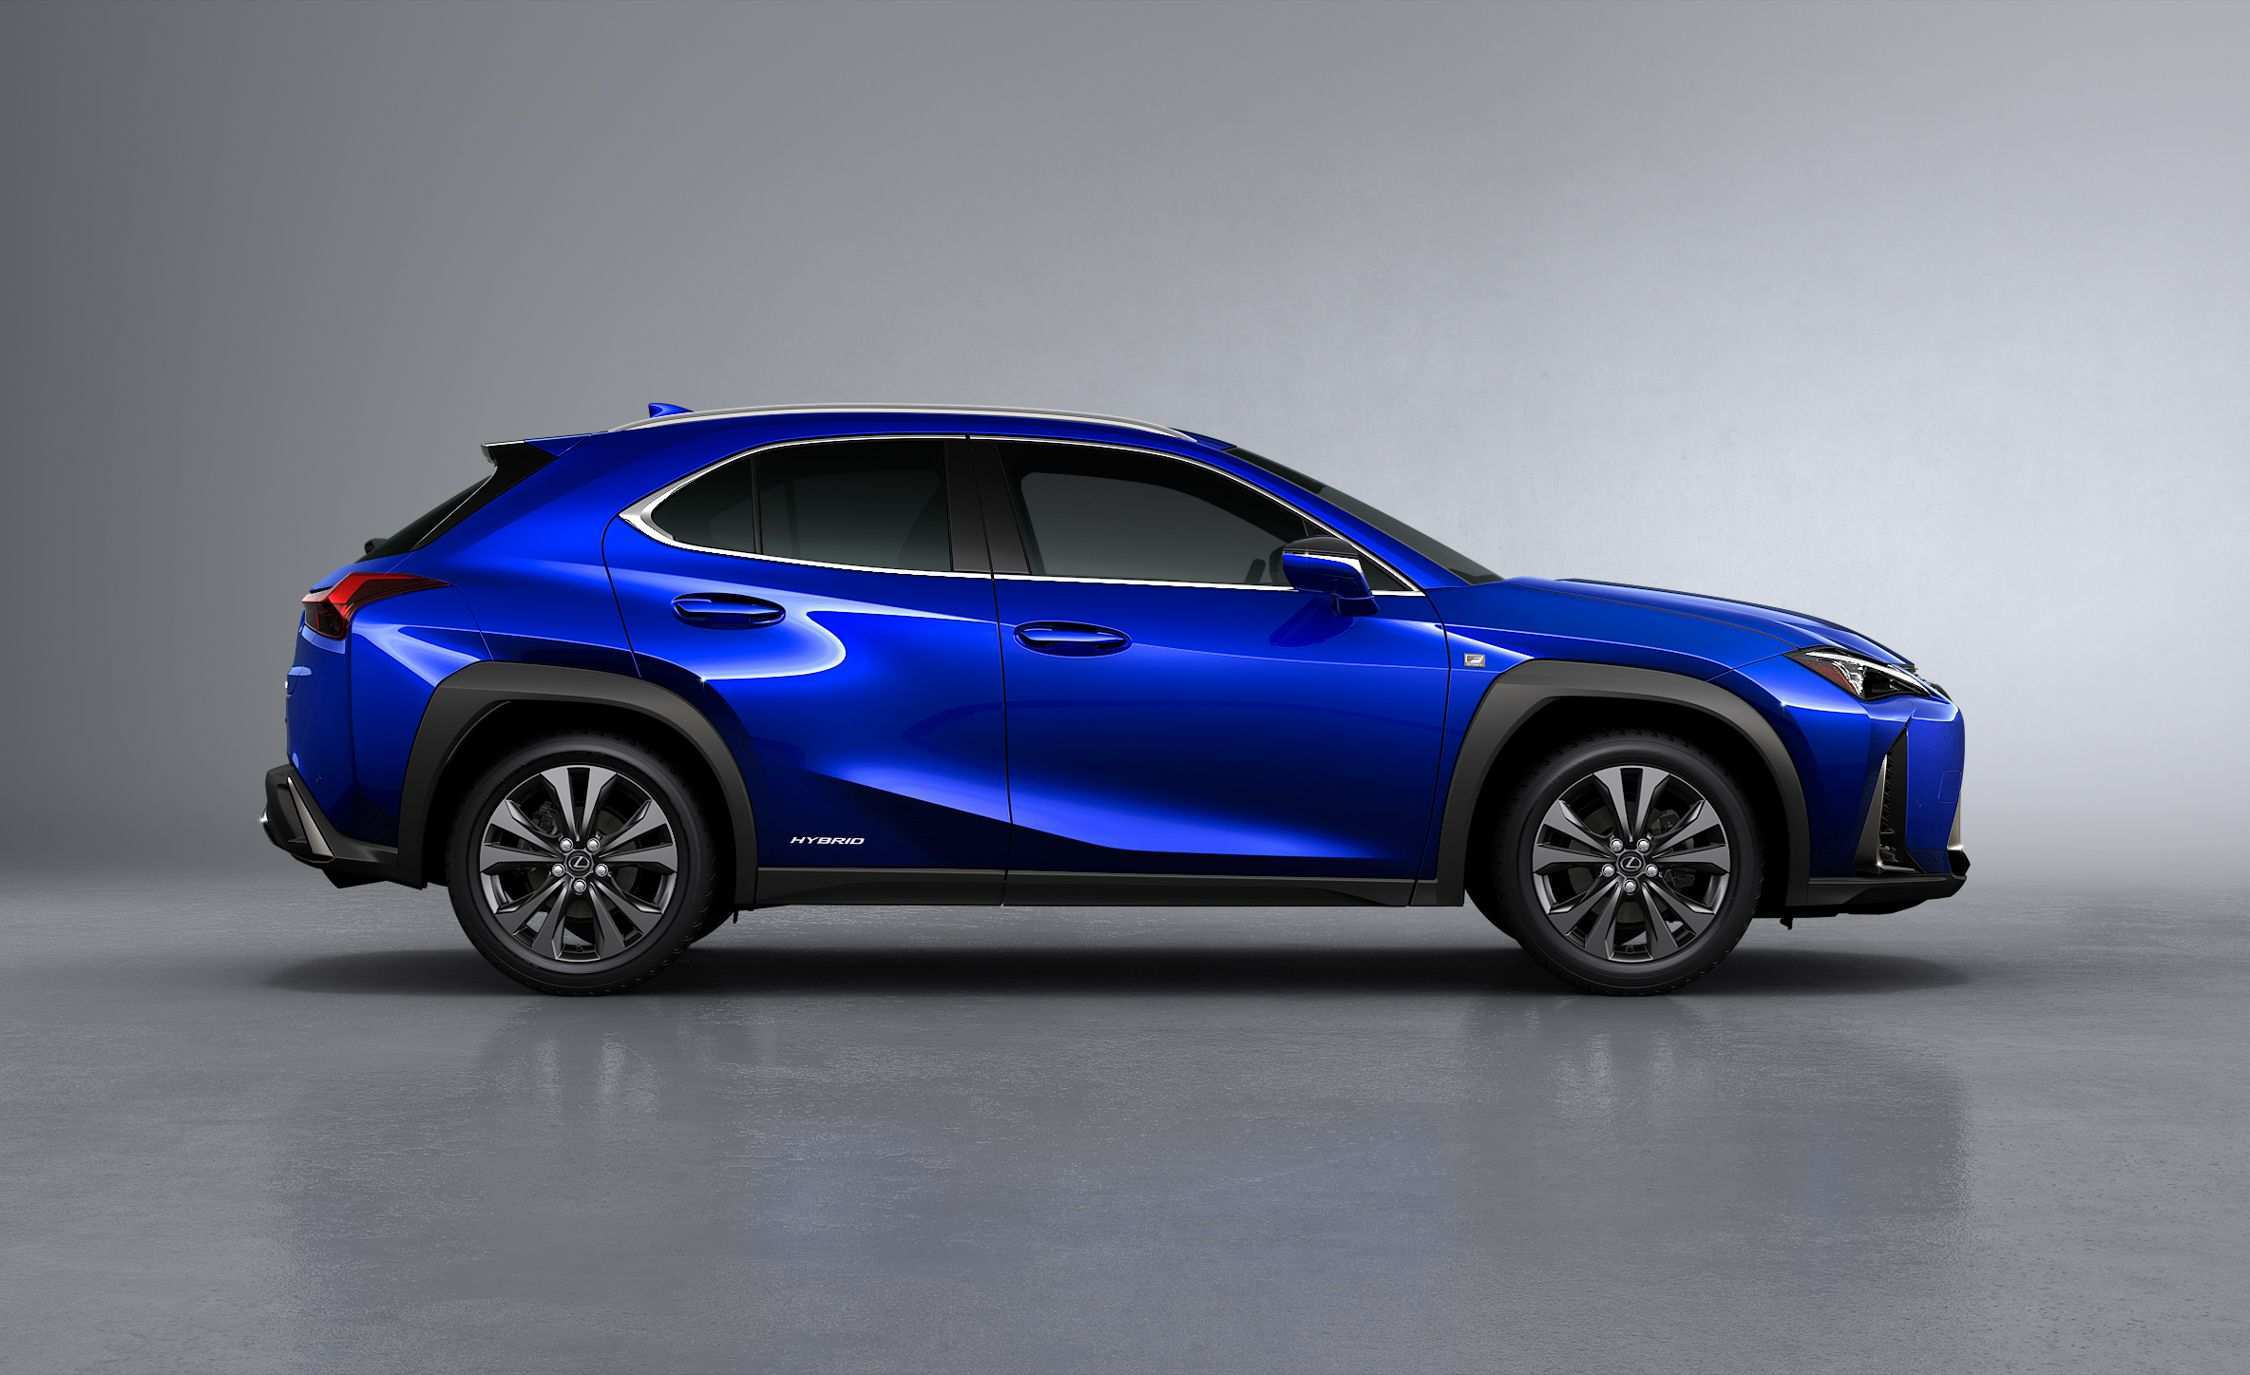 76 Great 2019 Lexus Ux Price Canada Exterior for 2019 Lexus Ux Price Canada